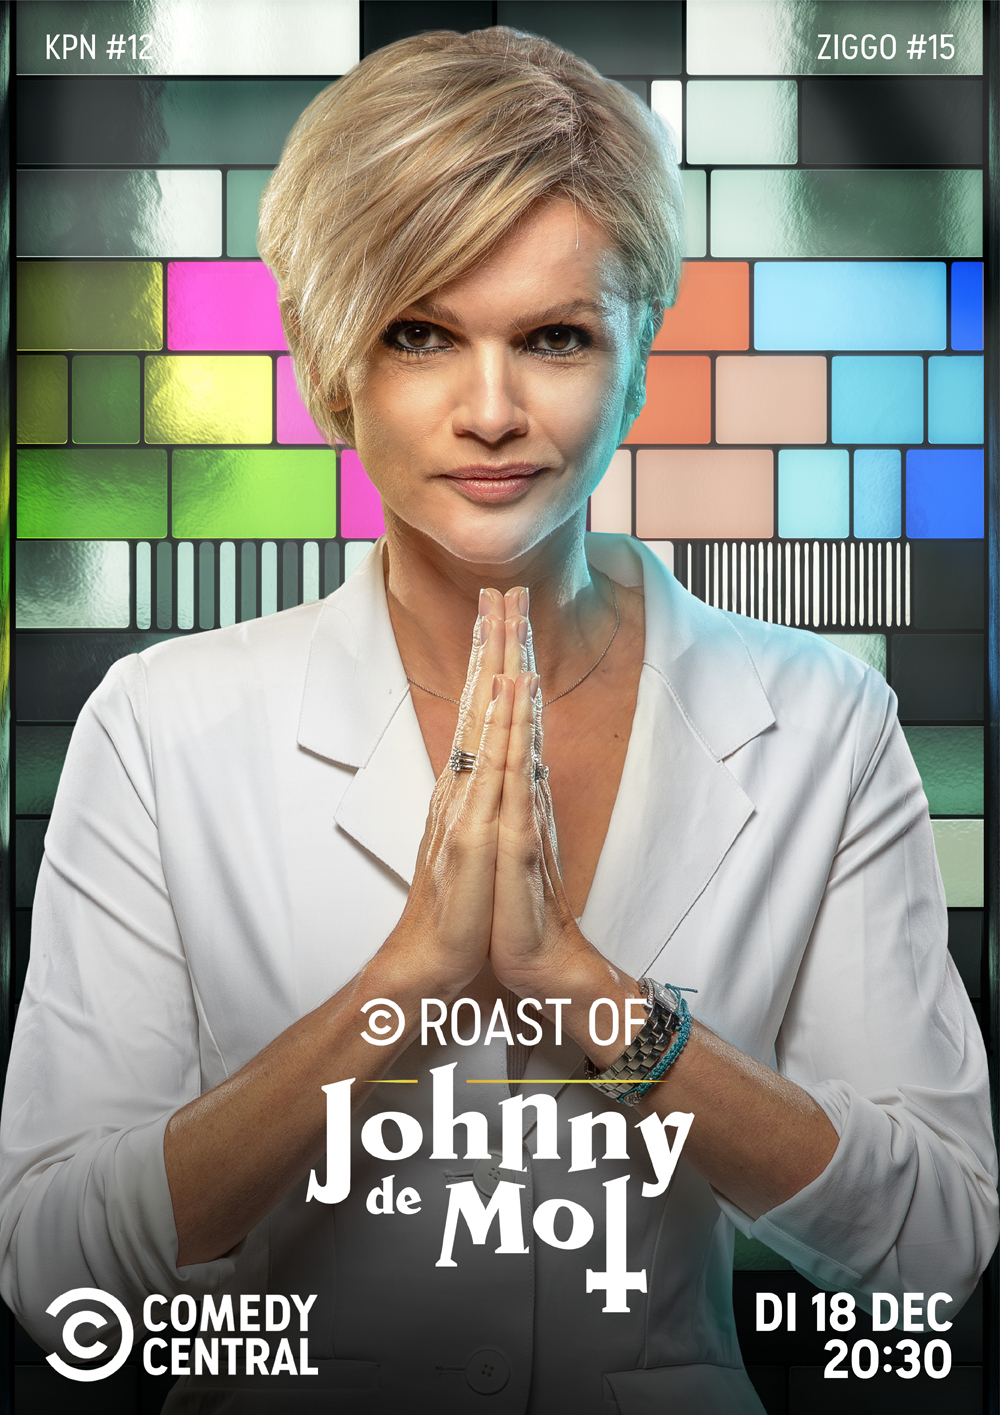 Tooske Ragas The Roast of Johnny the Mol Comedy Central